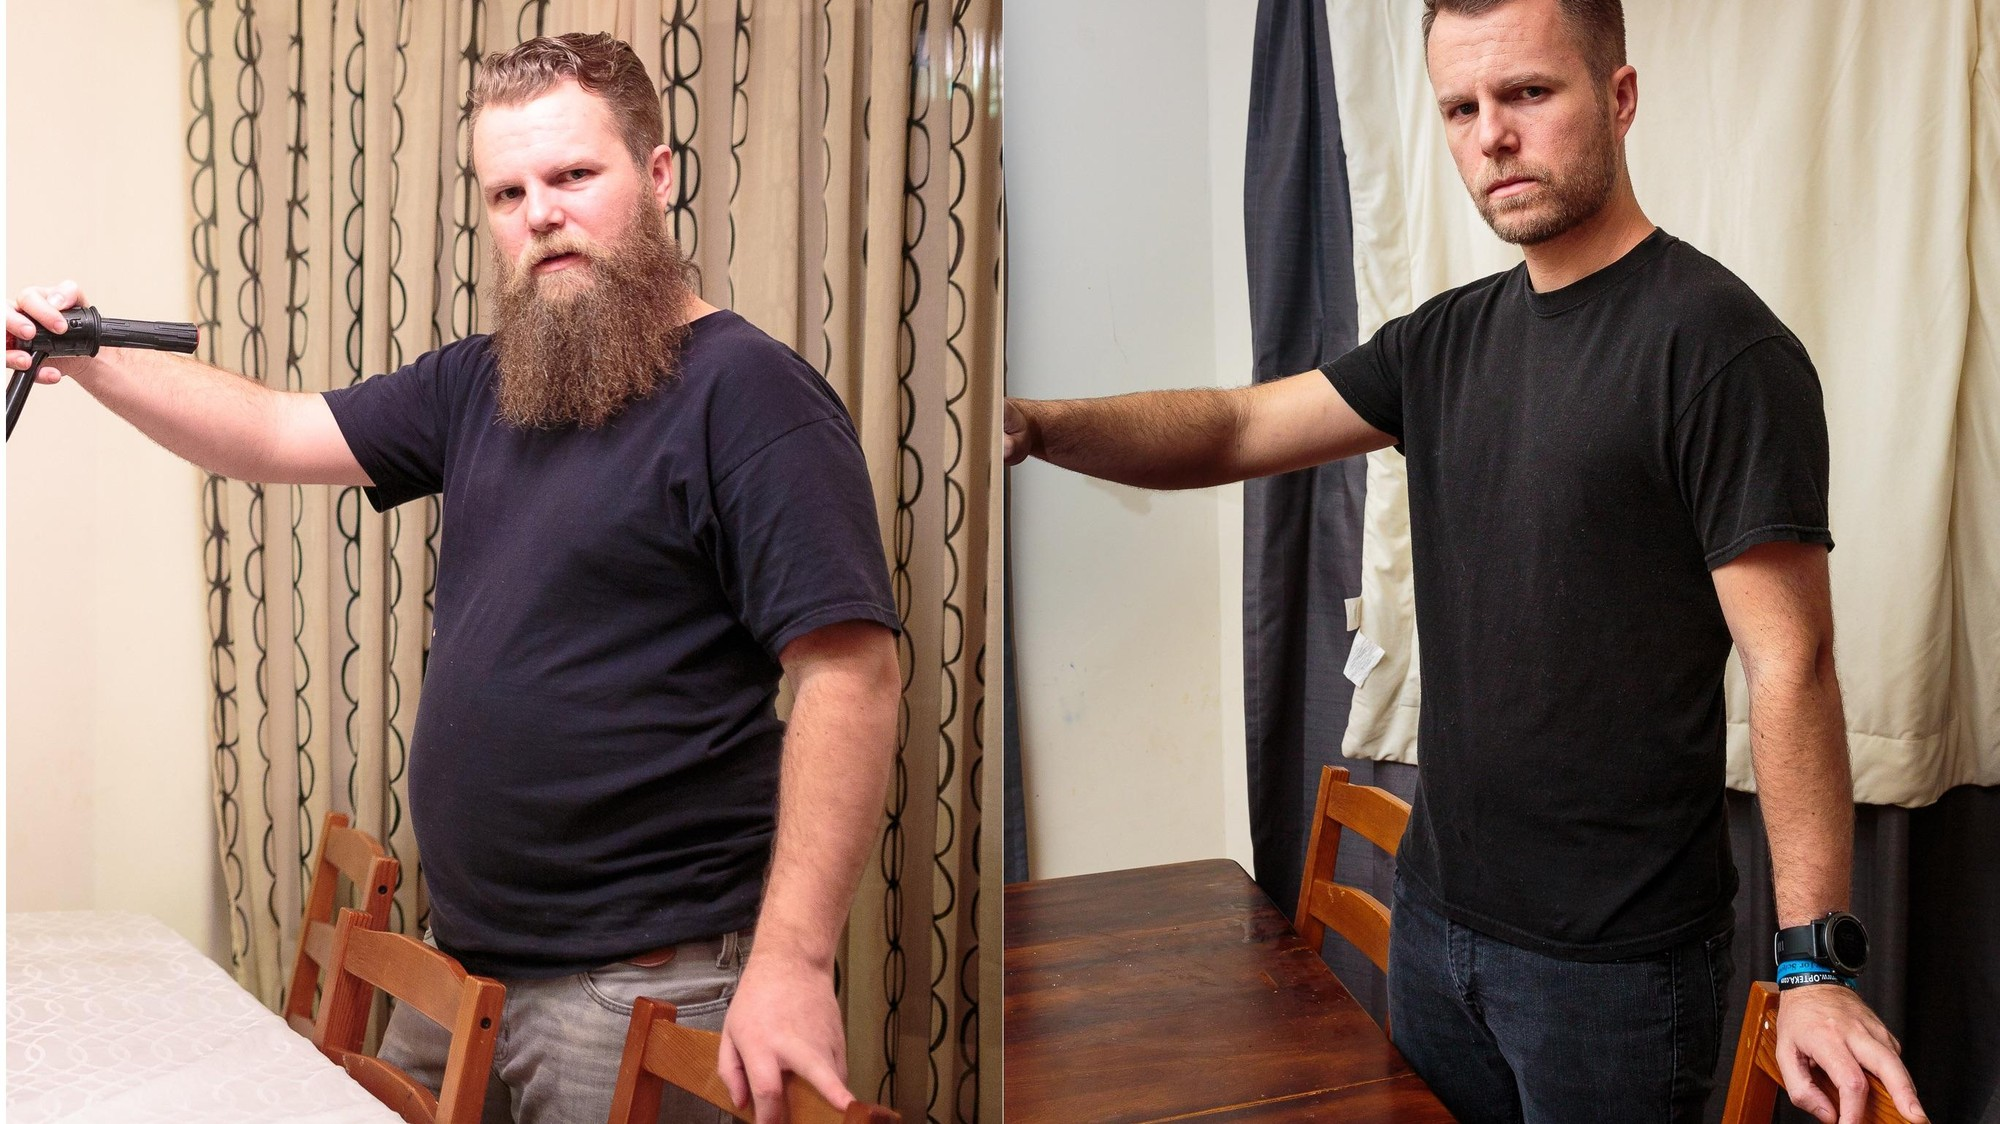 This Man Gave Up Drinking and Lost 53 Pounds - VICE